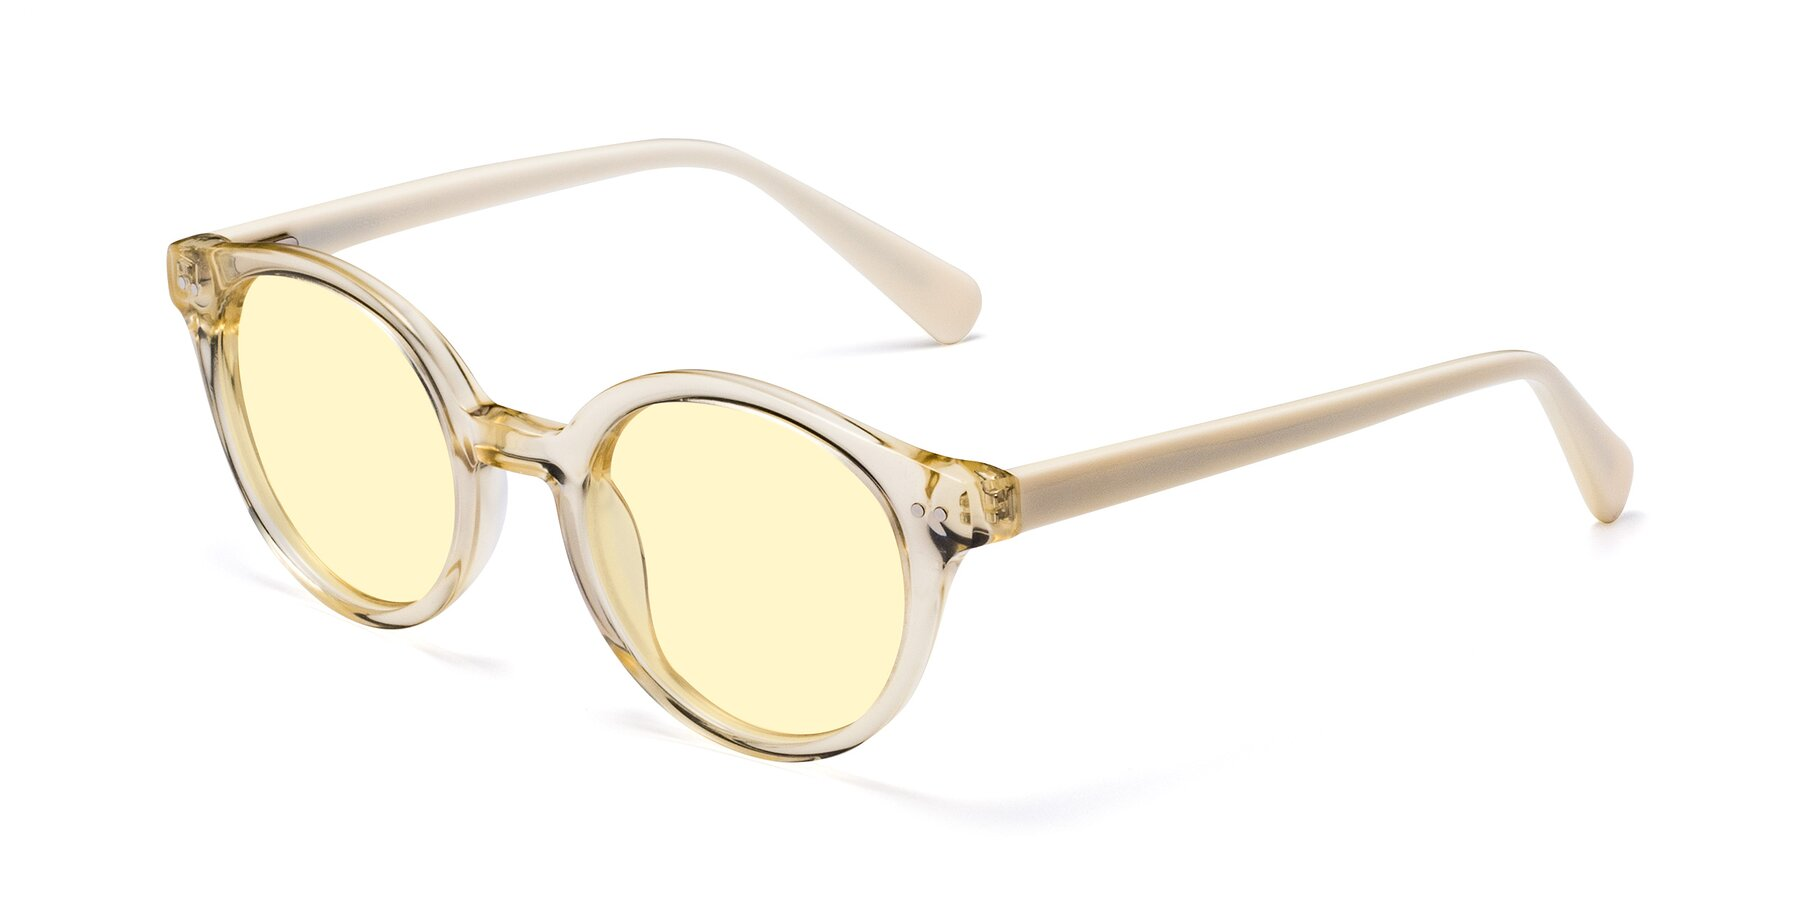 Angle of 17277 in Transparent Beige with Light Yellow Tinted Lenses